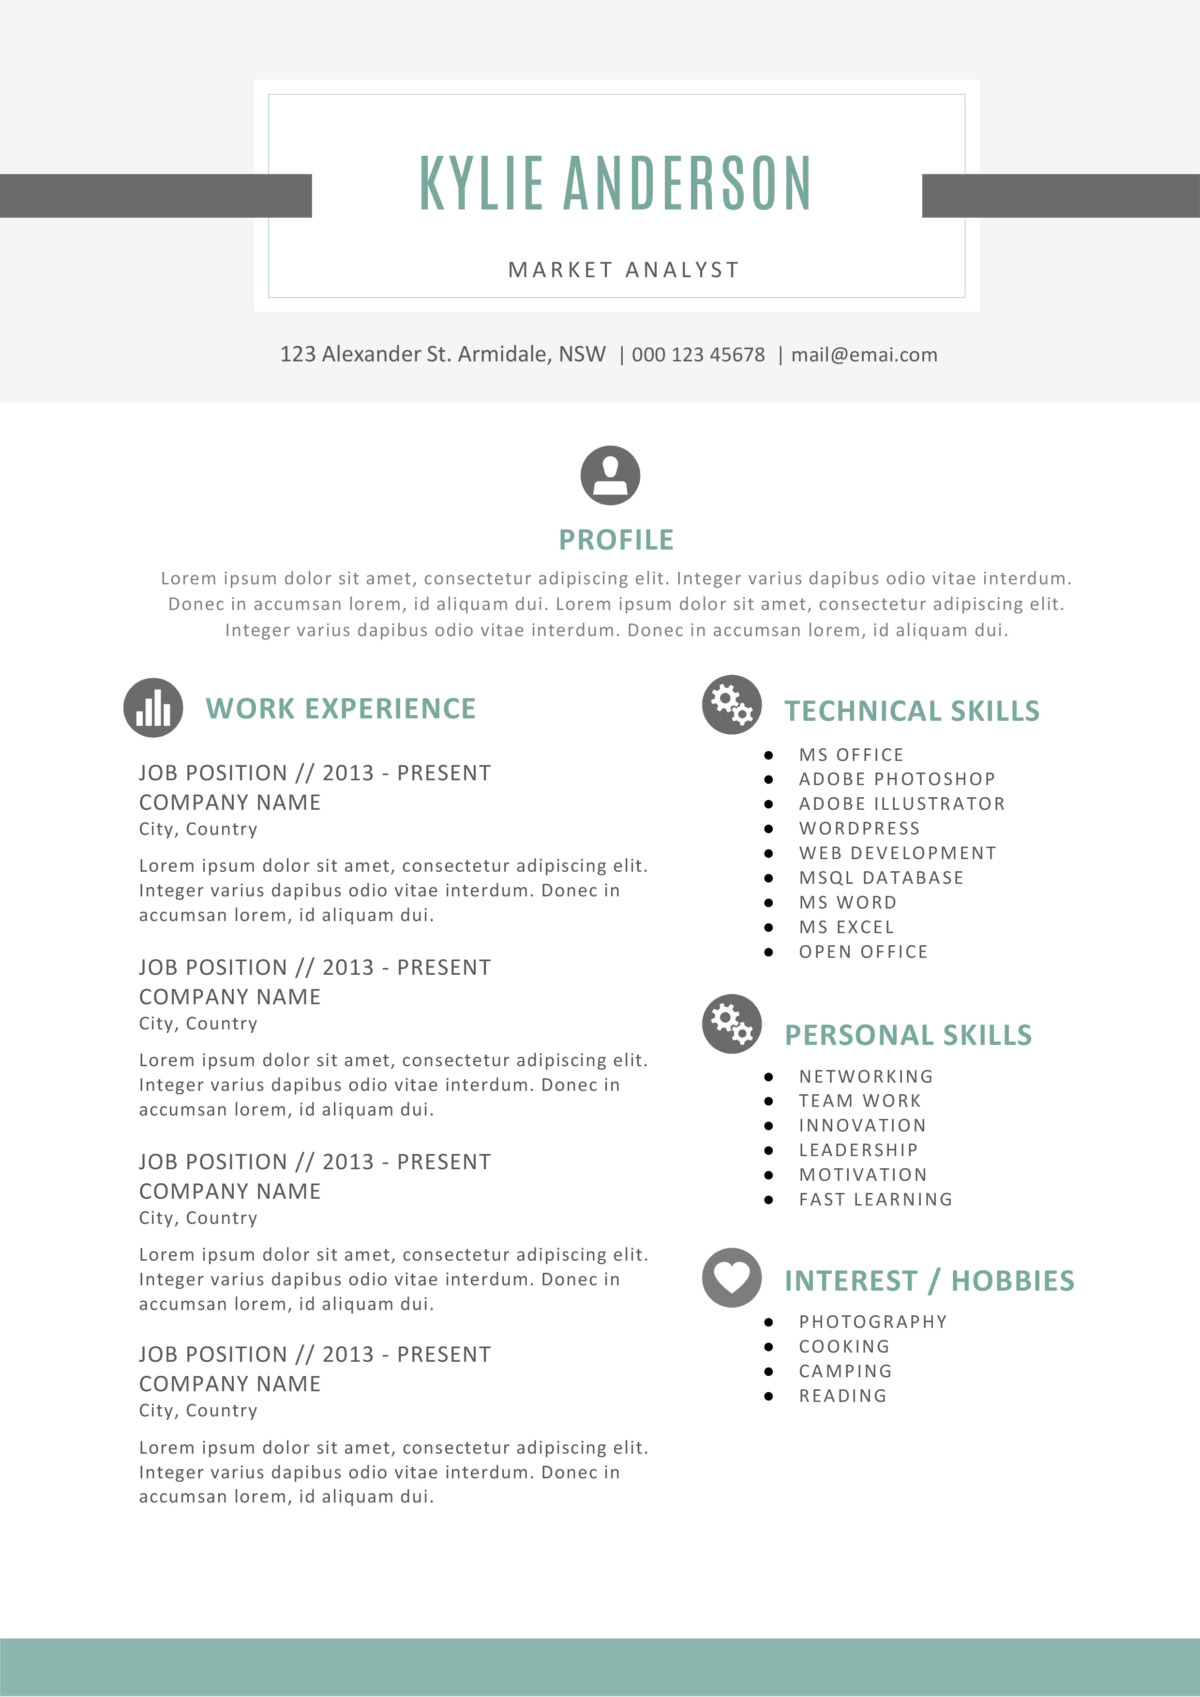 Beautiful Kylie Anderson Resume Template For Soft Copy Of Resume